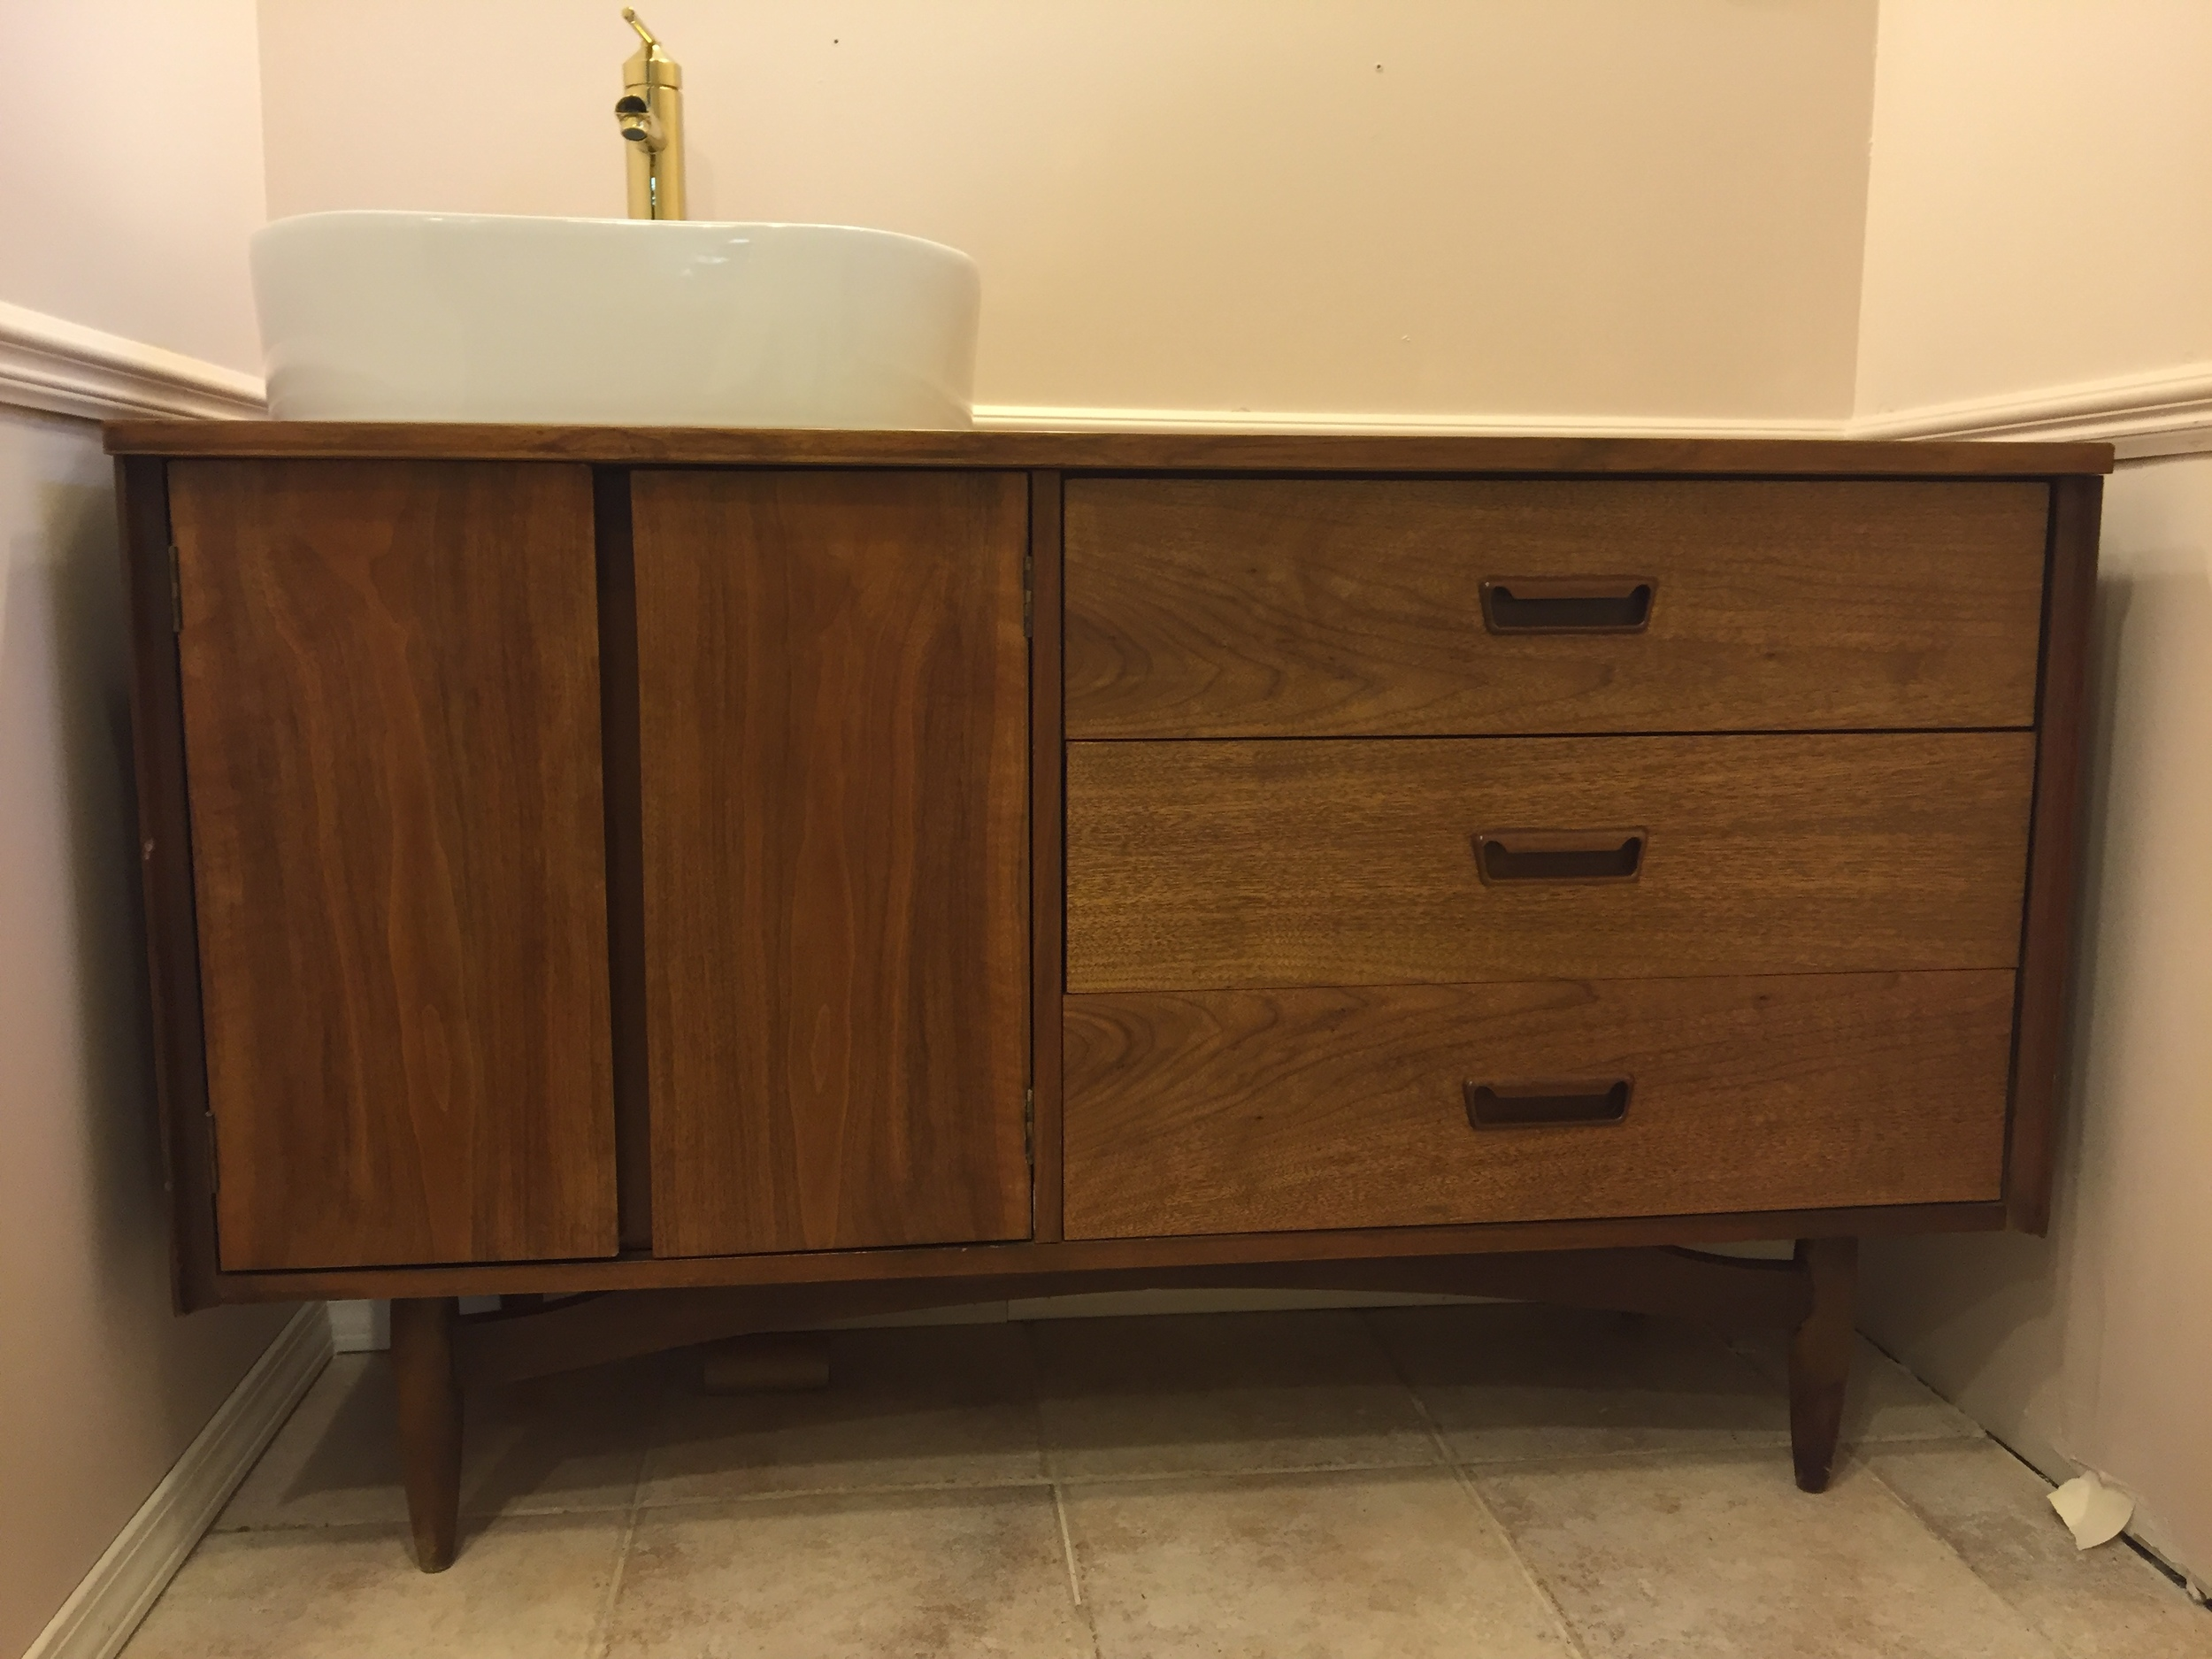 The finished vanity/sink/faucet! Yay!!!!